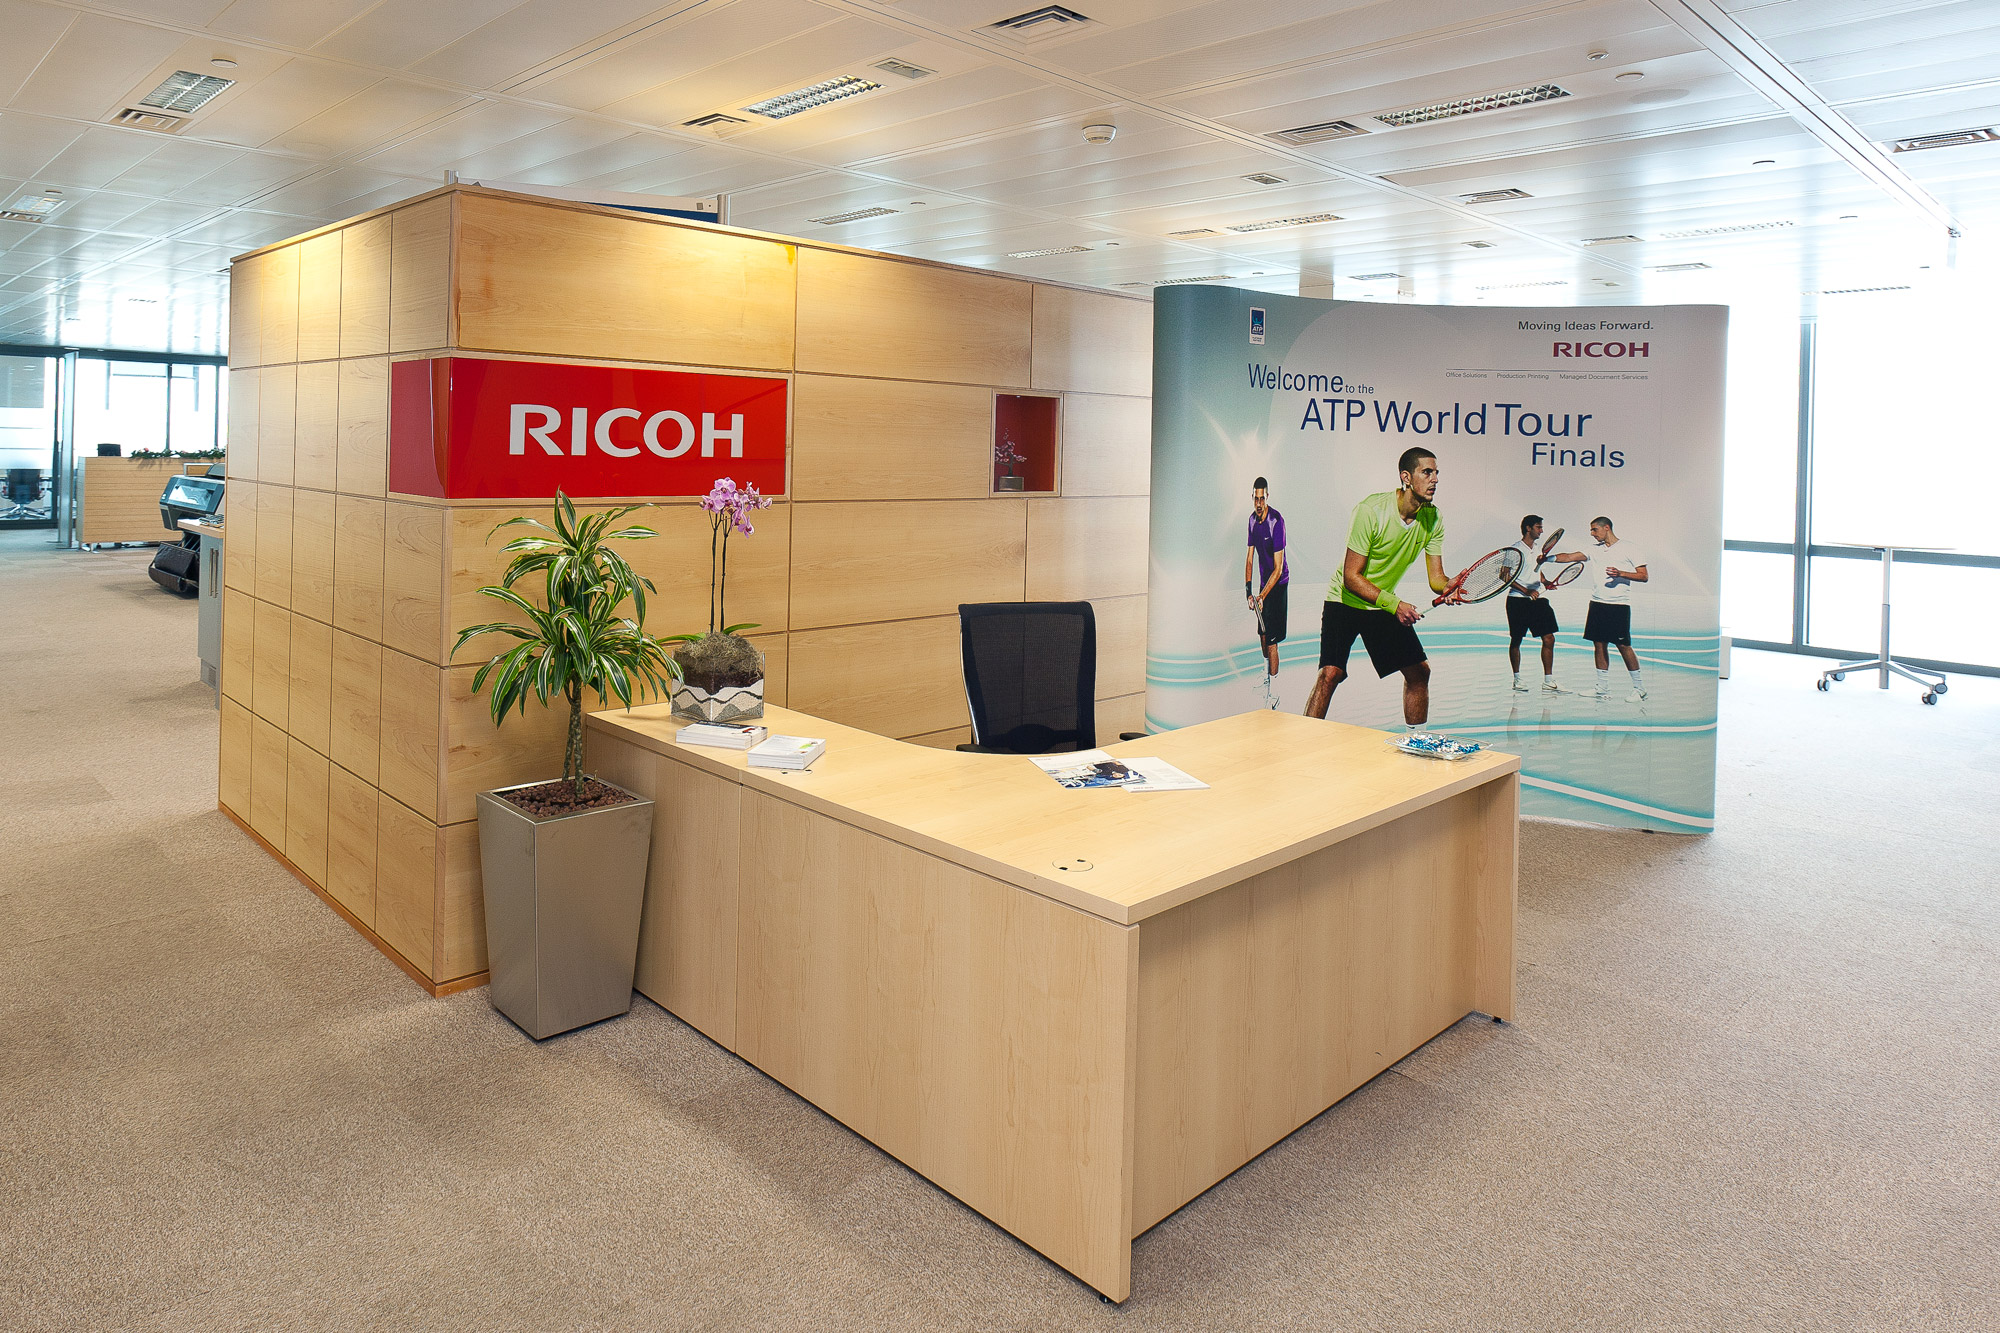 Event design for Ricoh at the ATP World Tour Finals